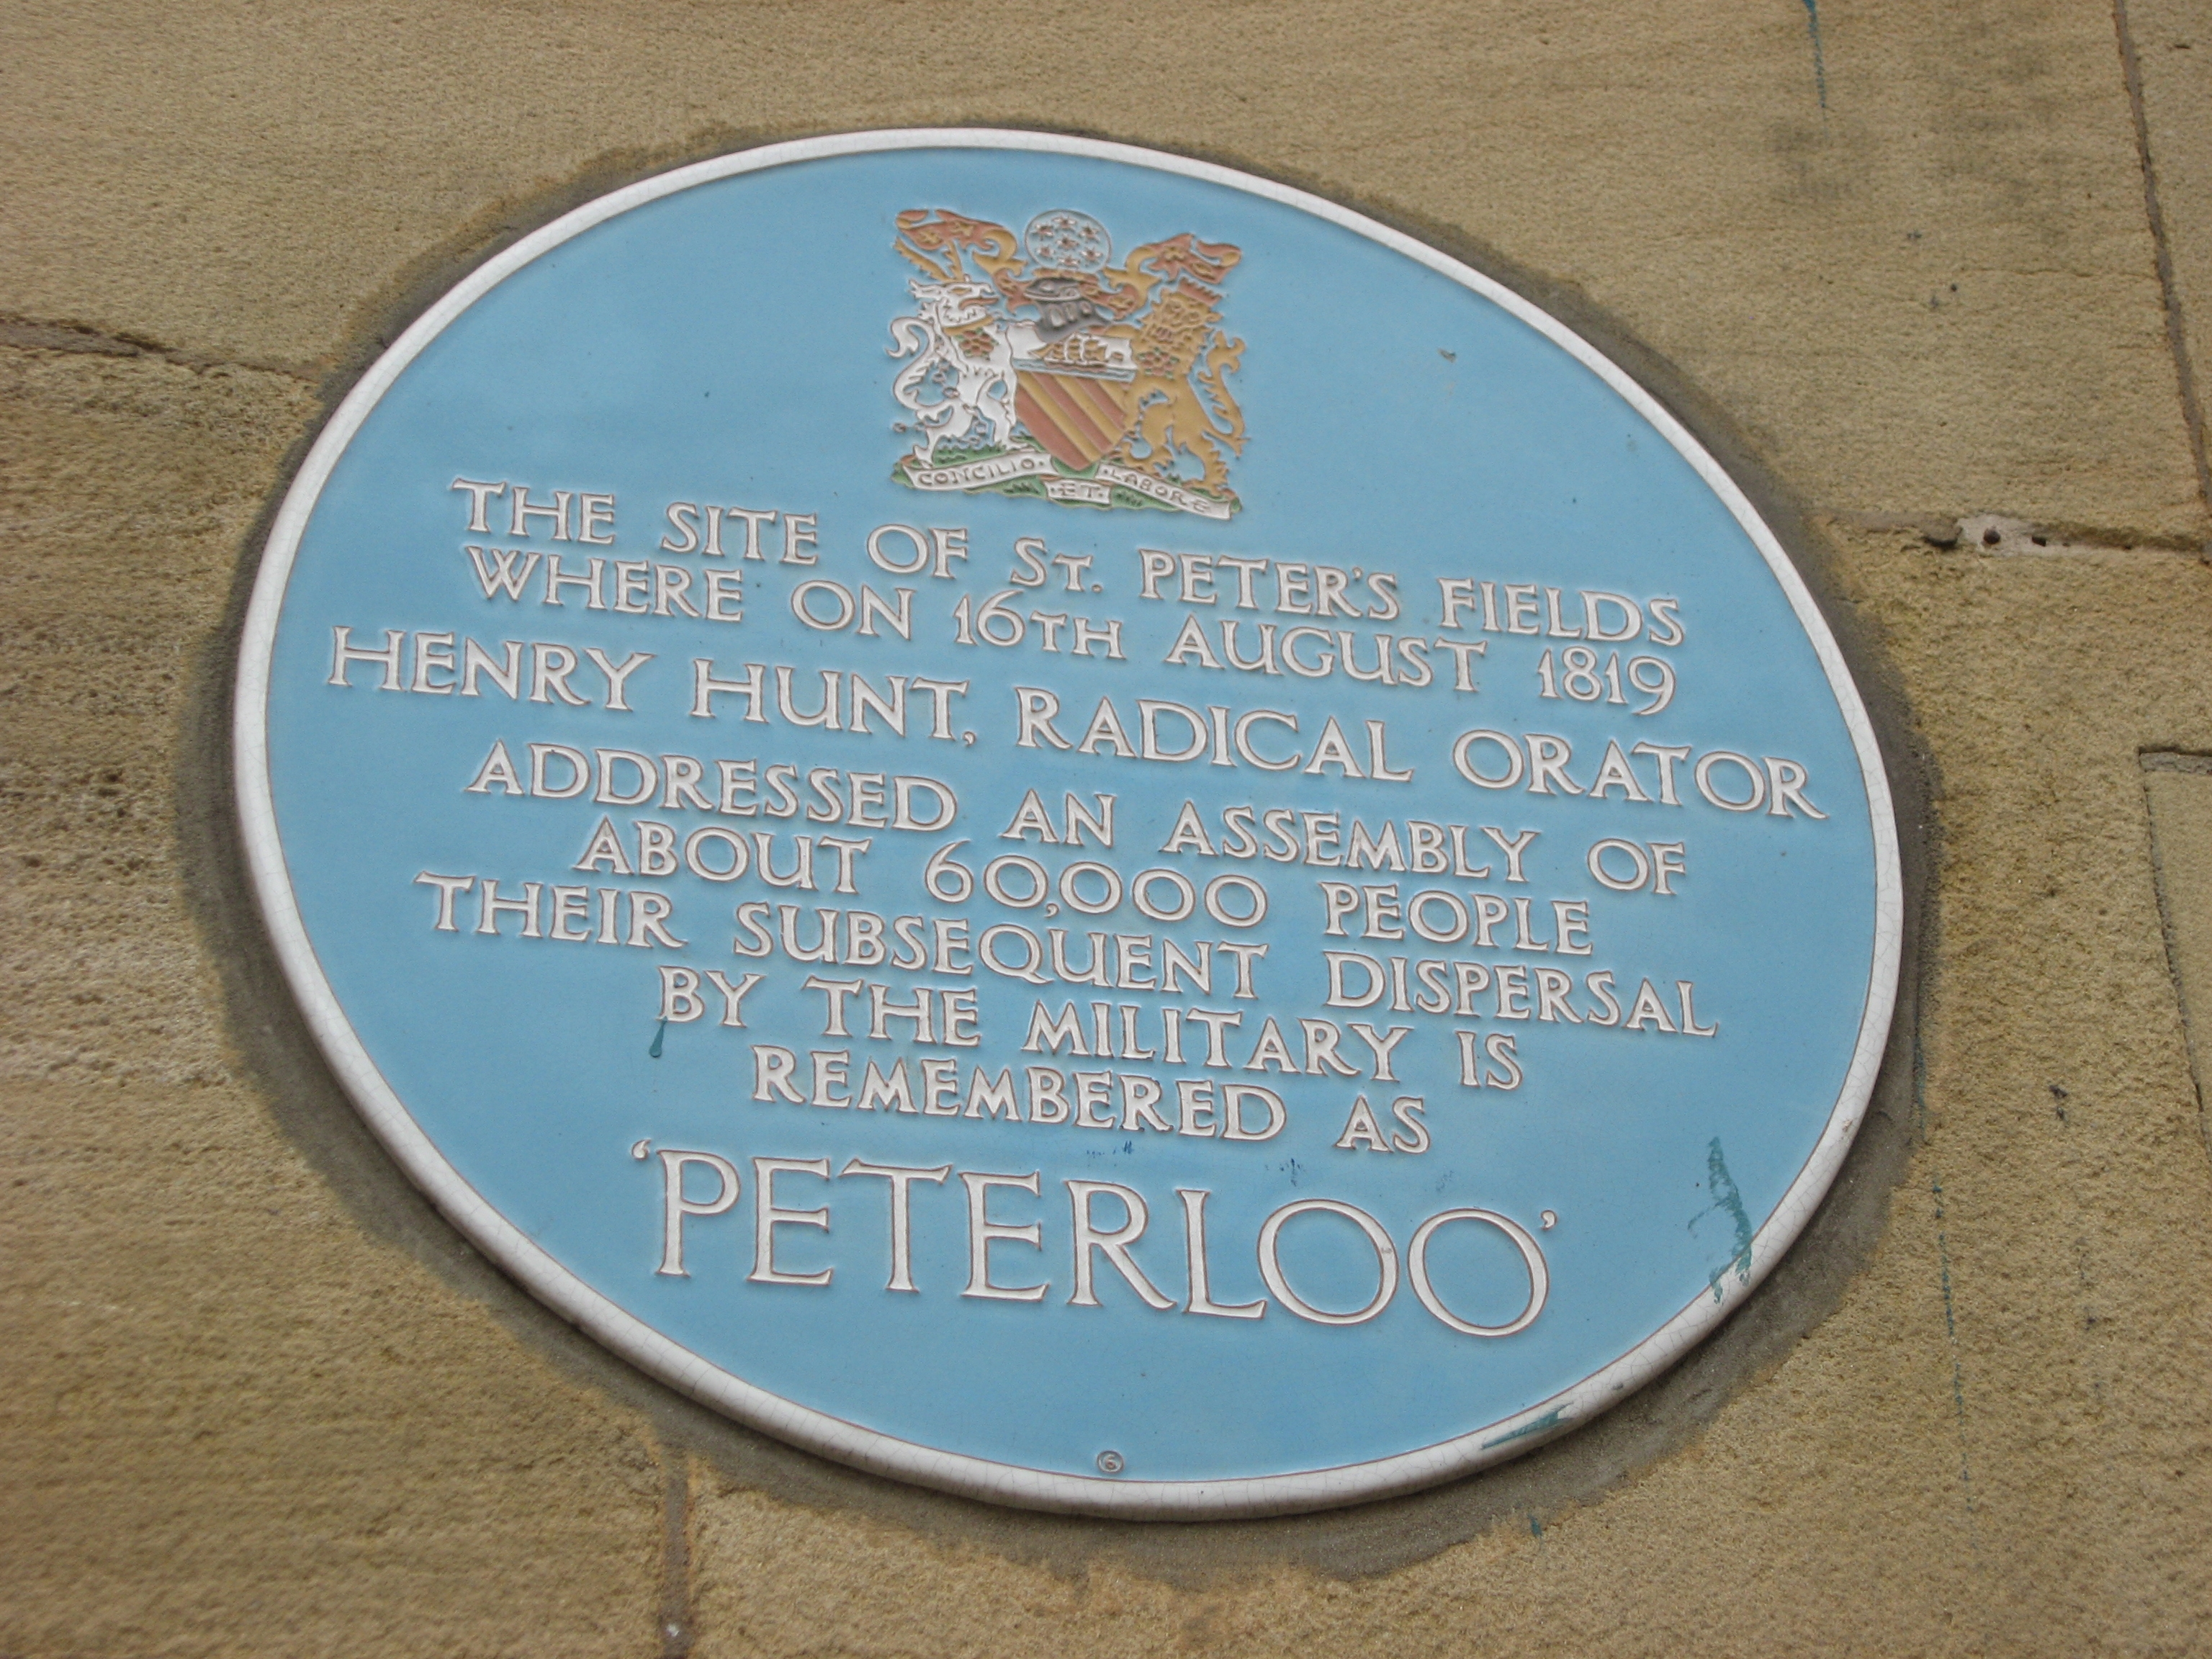 Peterloo_plaque.jpg?profile=RESIZE_710x